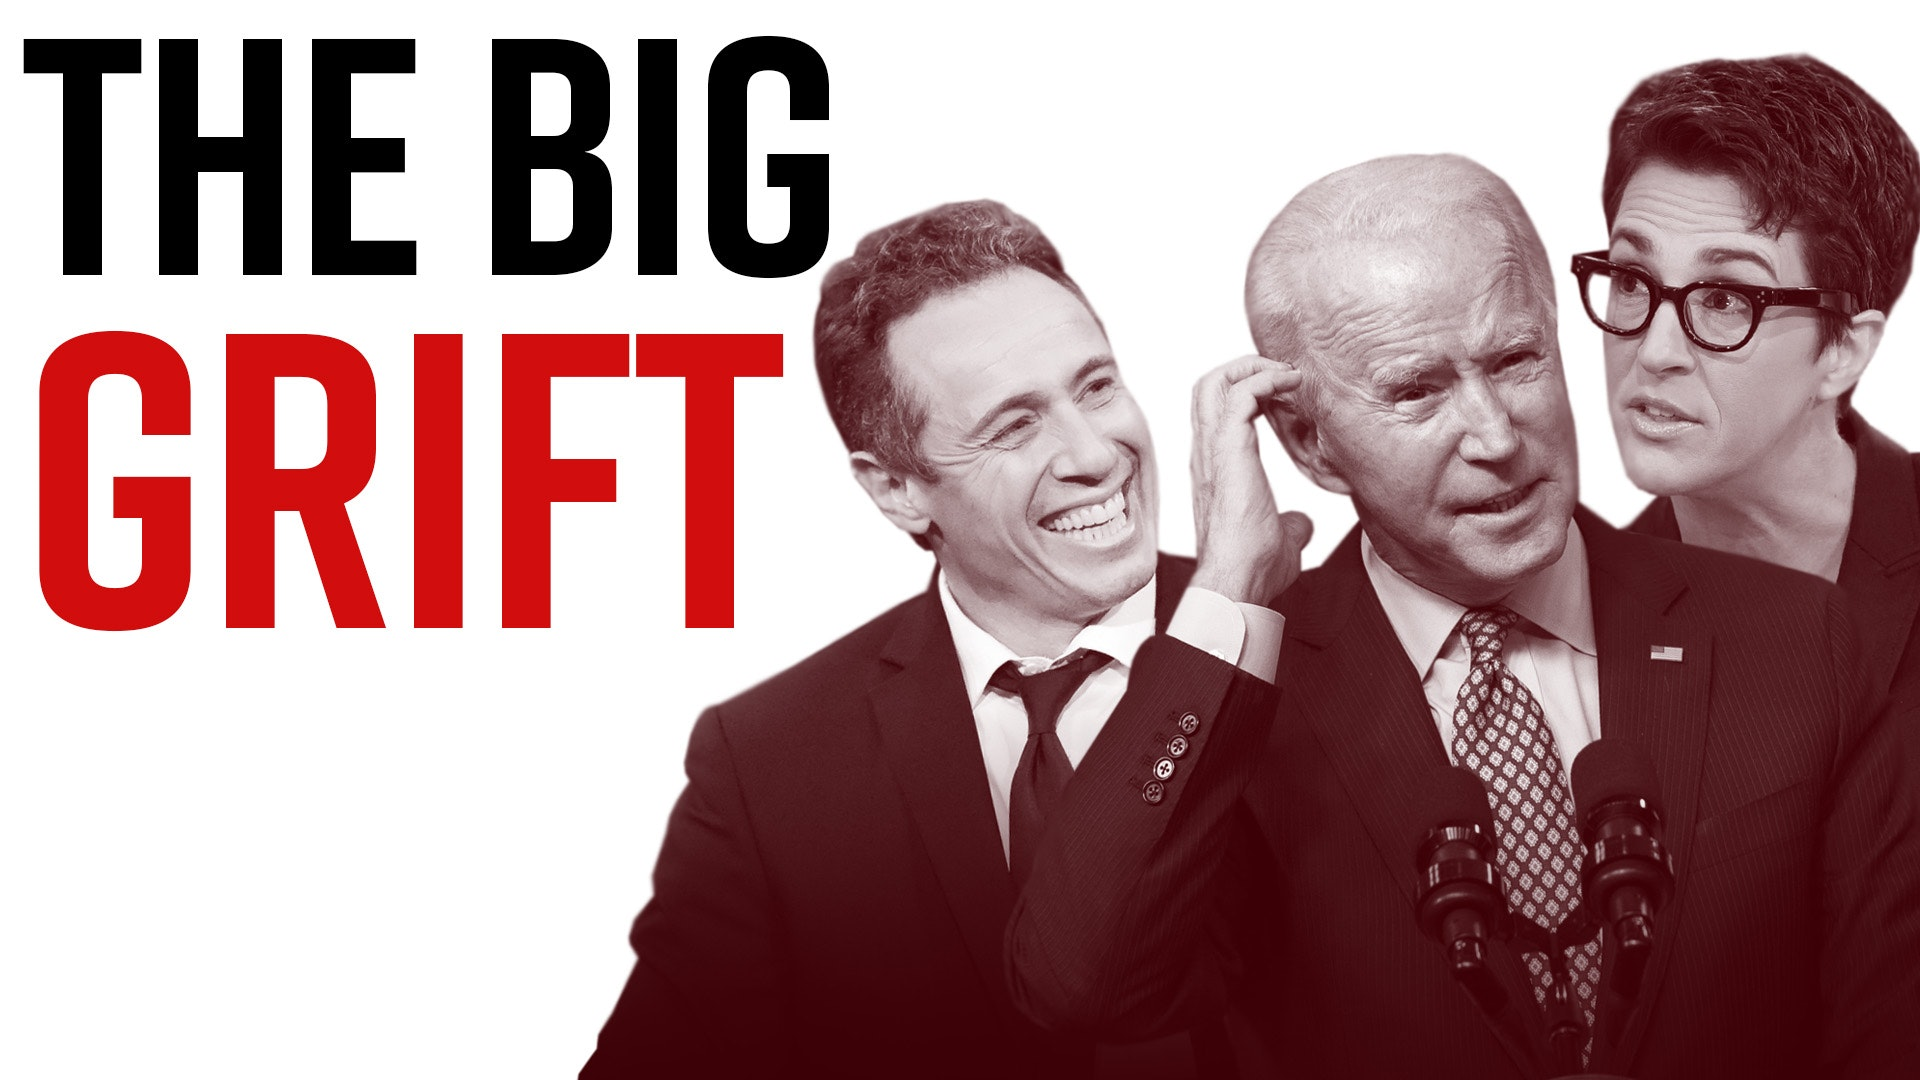 Ep. 1020 - The Big Grift